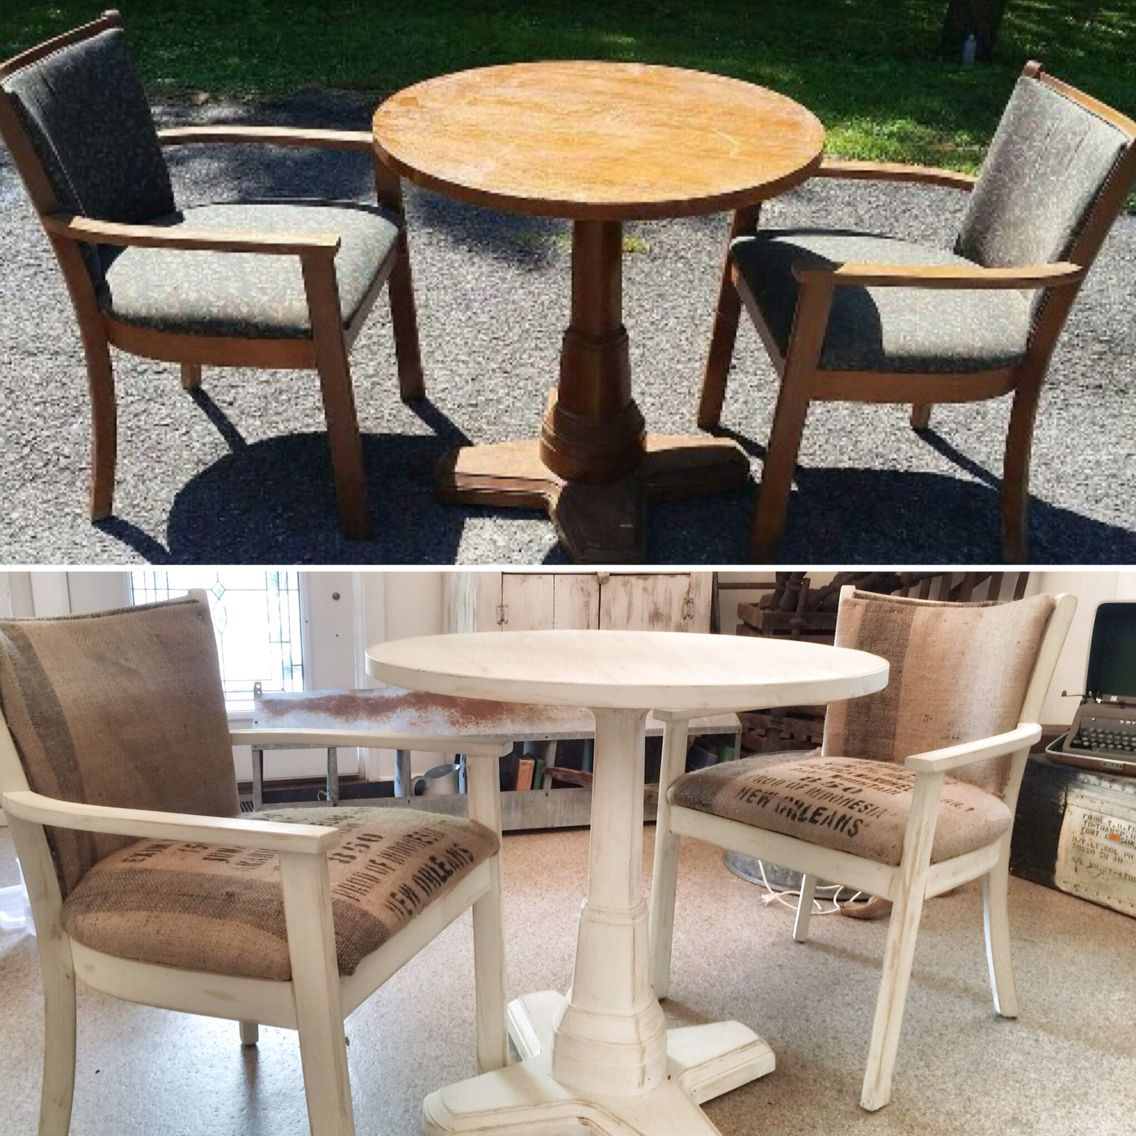 Before and after farmhouse table and chairs